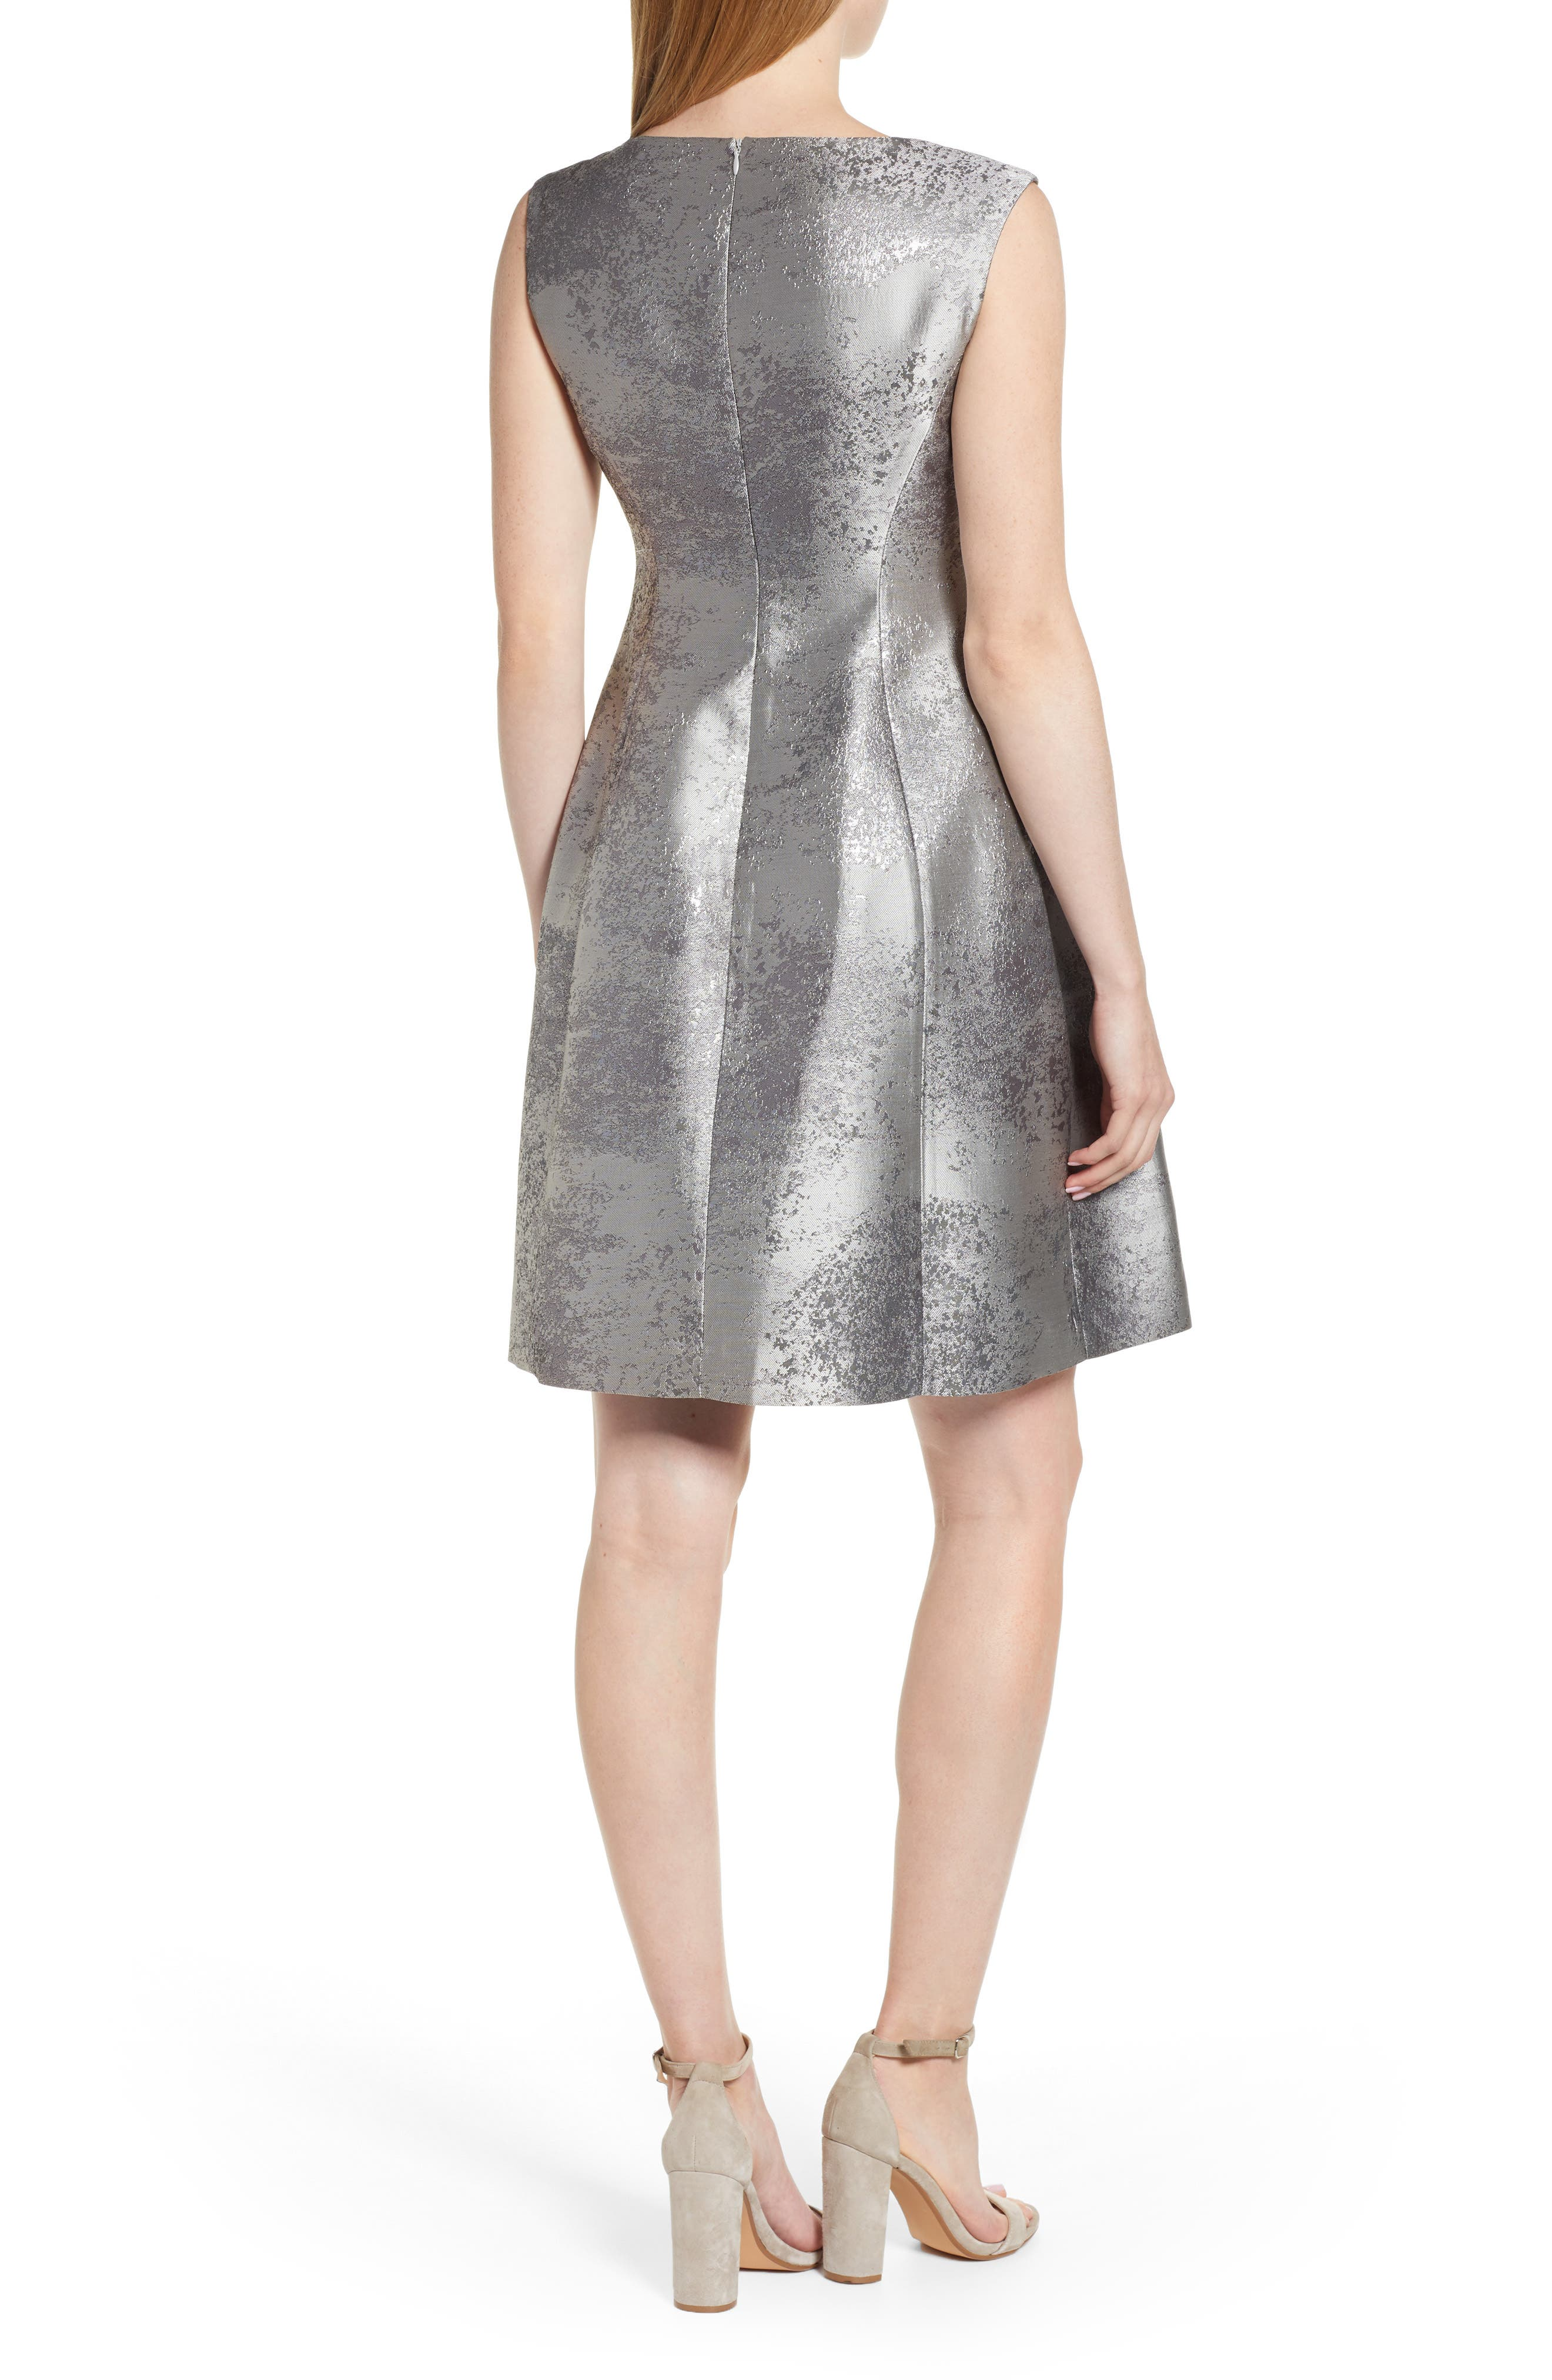 ANNE KLEIN,                             Satin Jacquard Fit & Flare Dress,                             Alternate thumbnail 2, color,                             SILVER COMBO